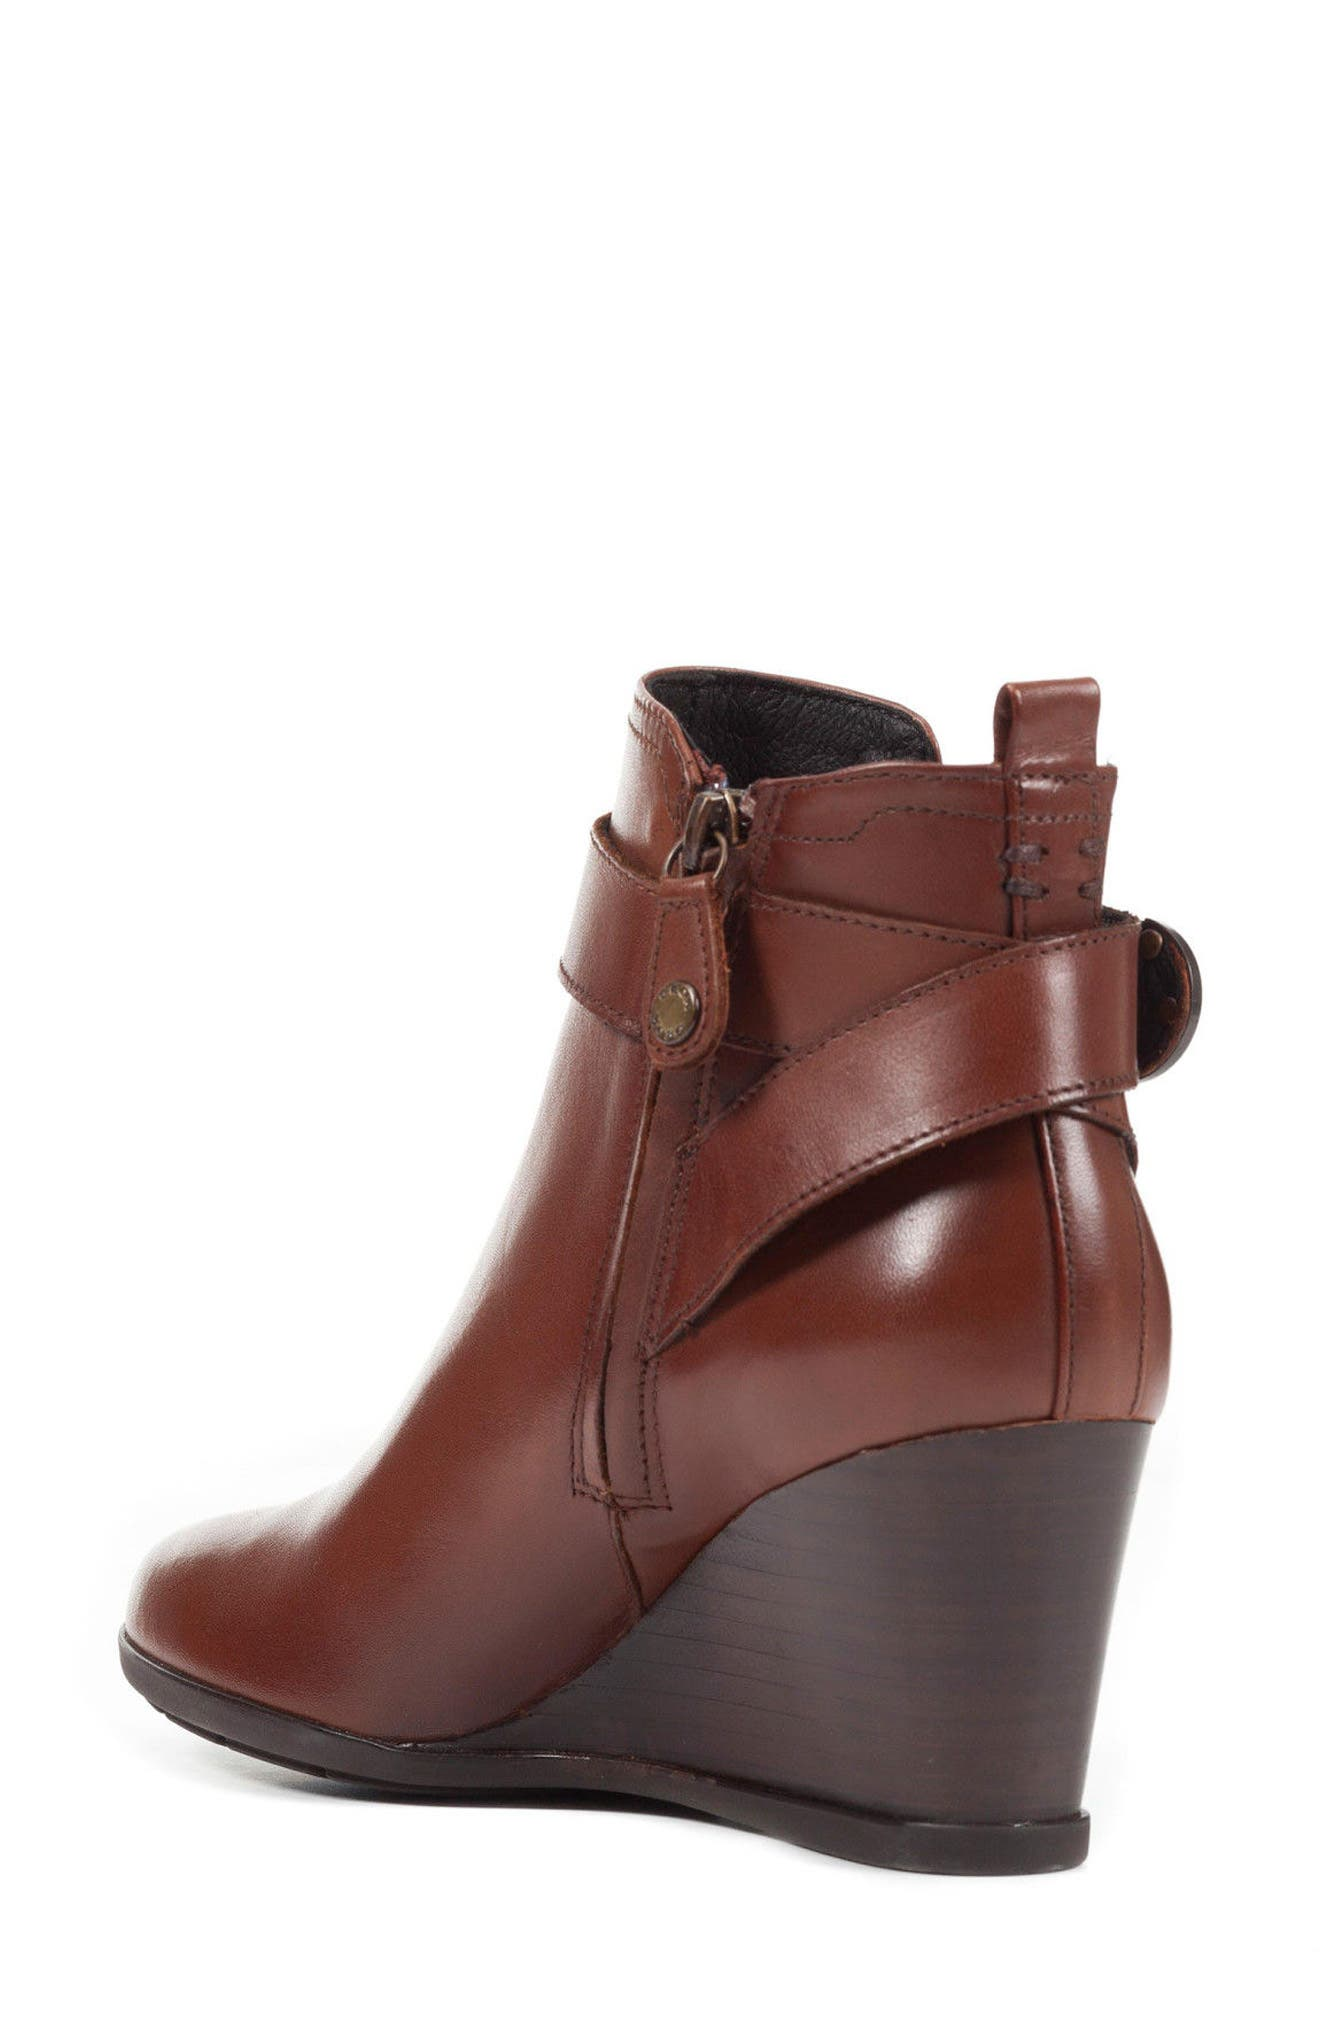 Inspiration Buckle Wedge Bootie,                             Alternate thumbnail 2, color,                             Brown Leather